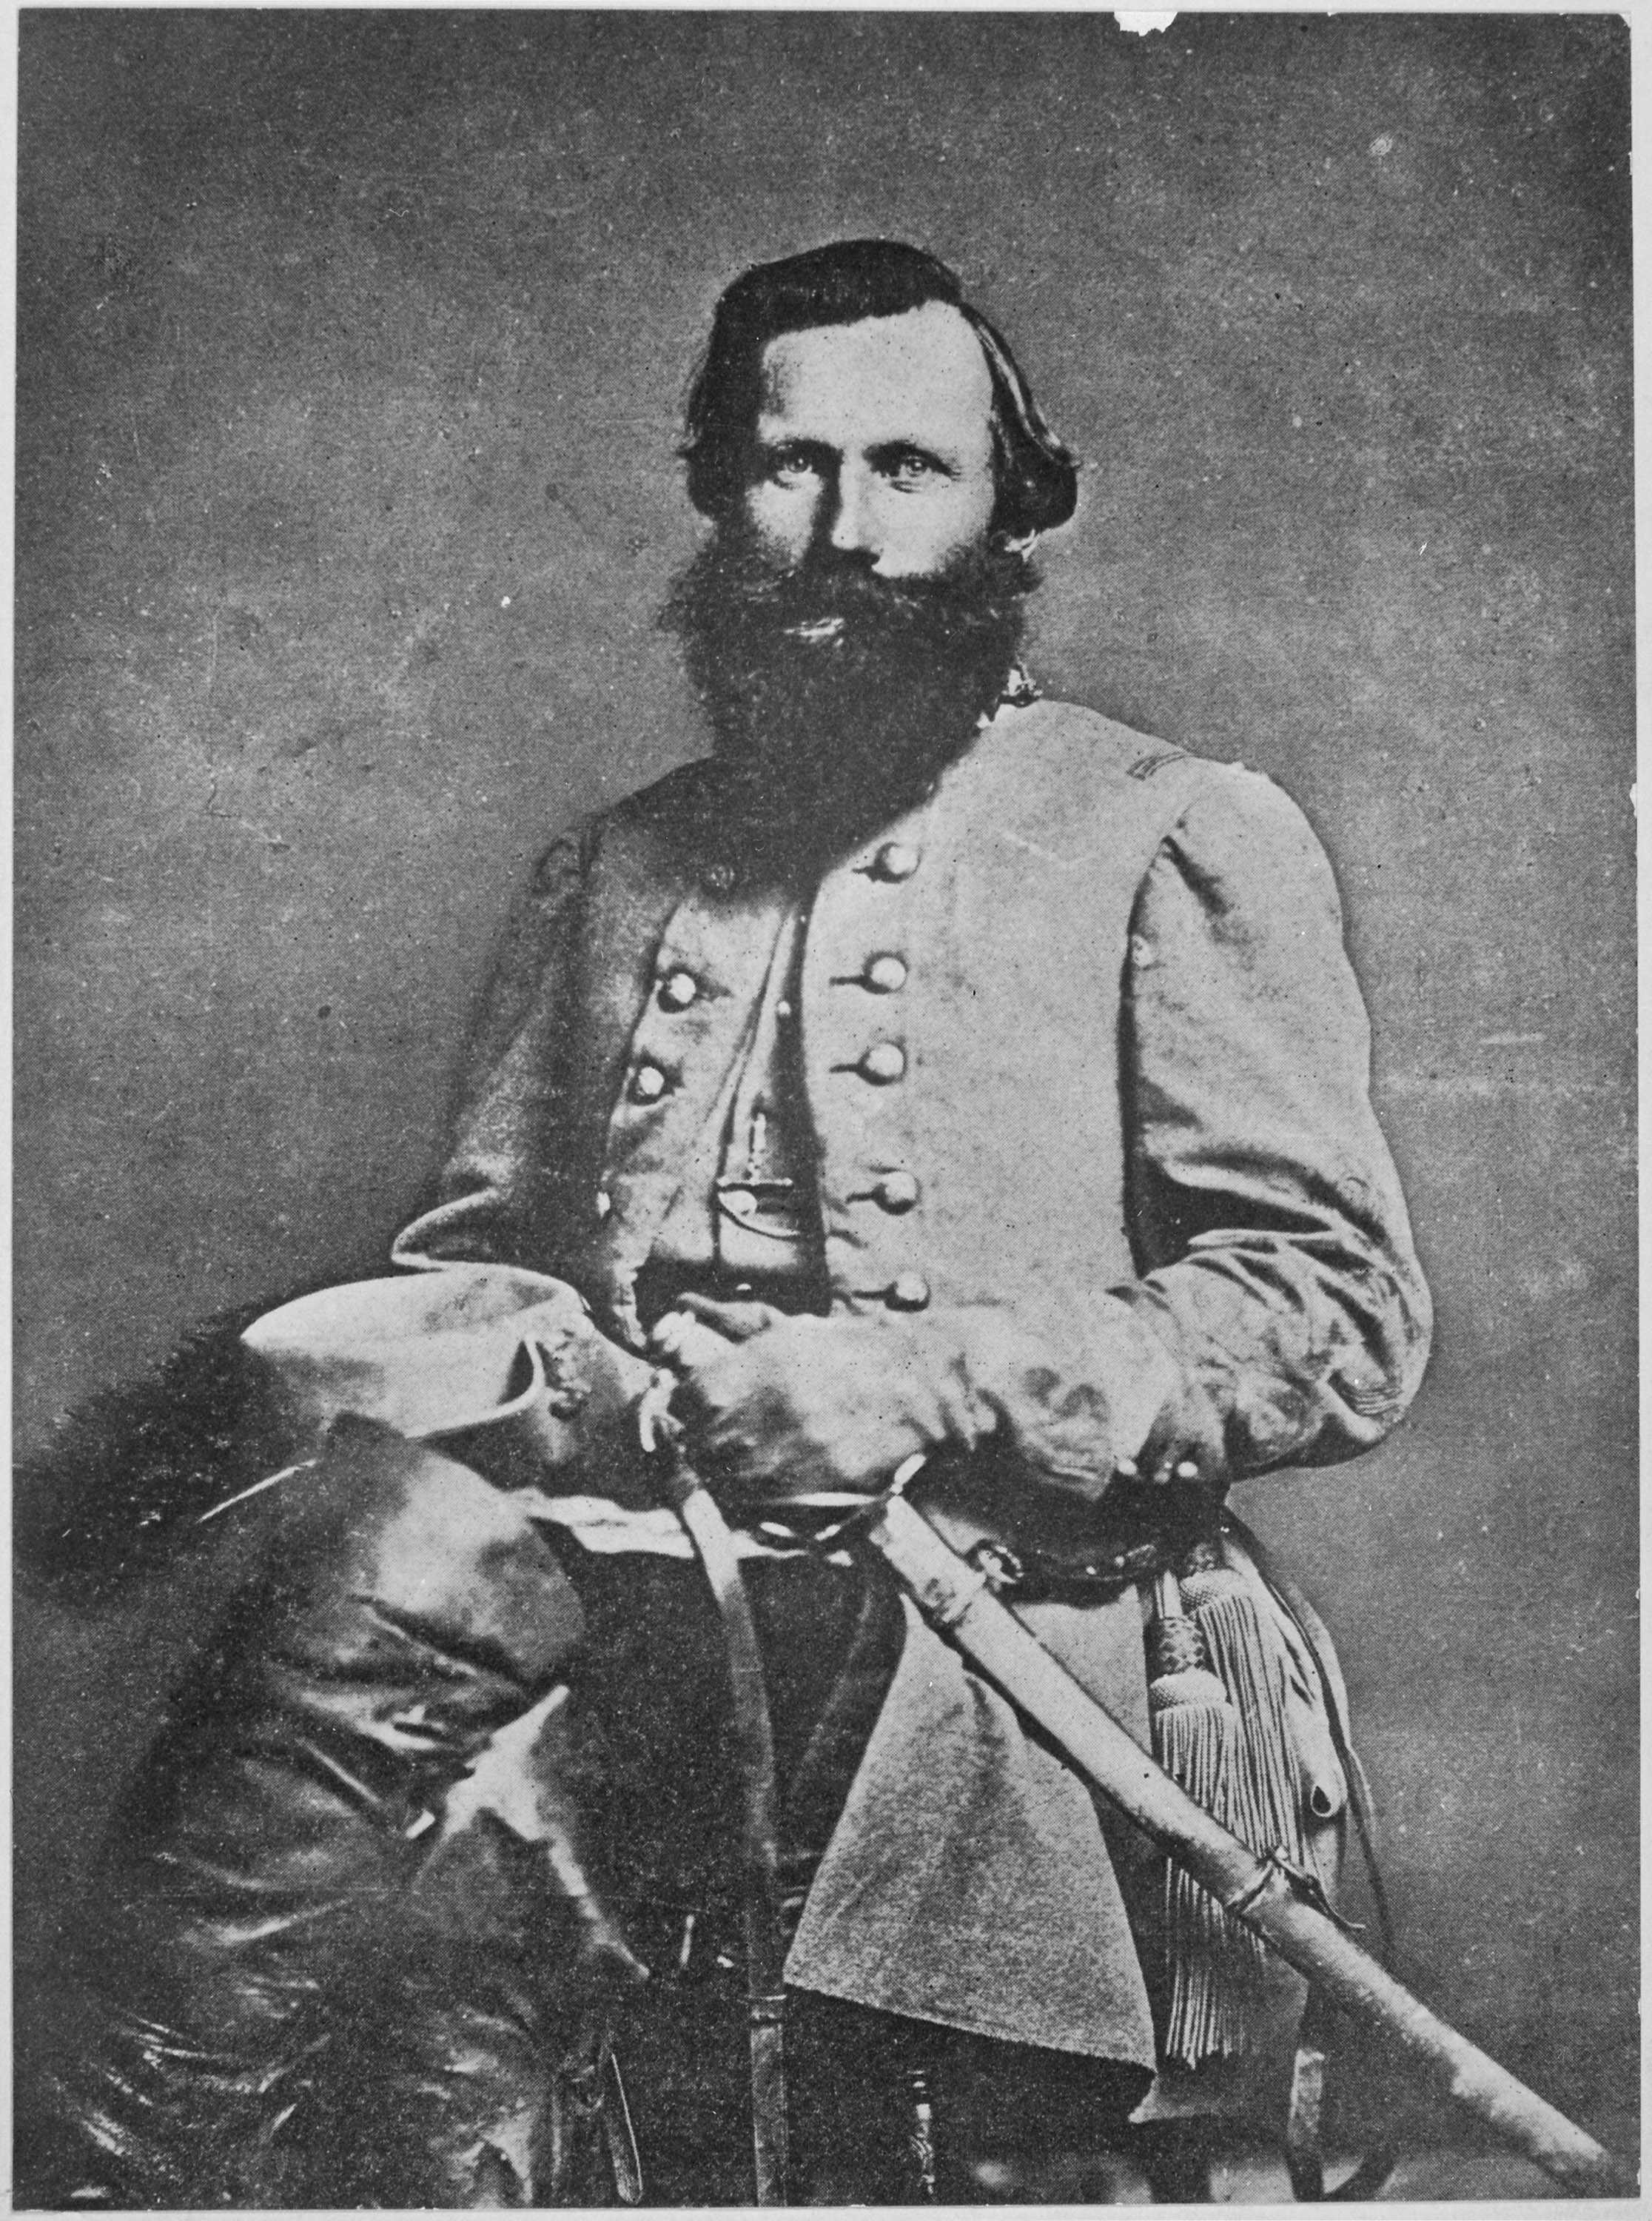 """General """"Jeb"""" Stuart, Confederate States of America, 1863. (National Archives Identifier 518135)"""